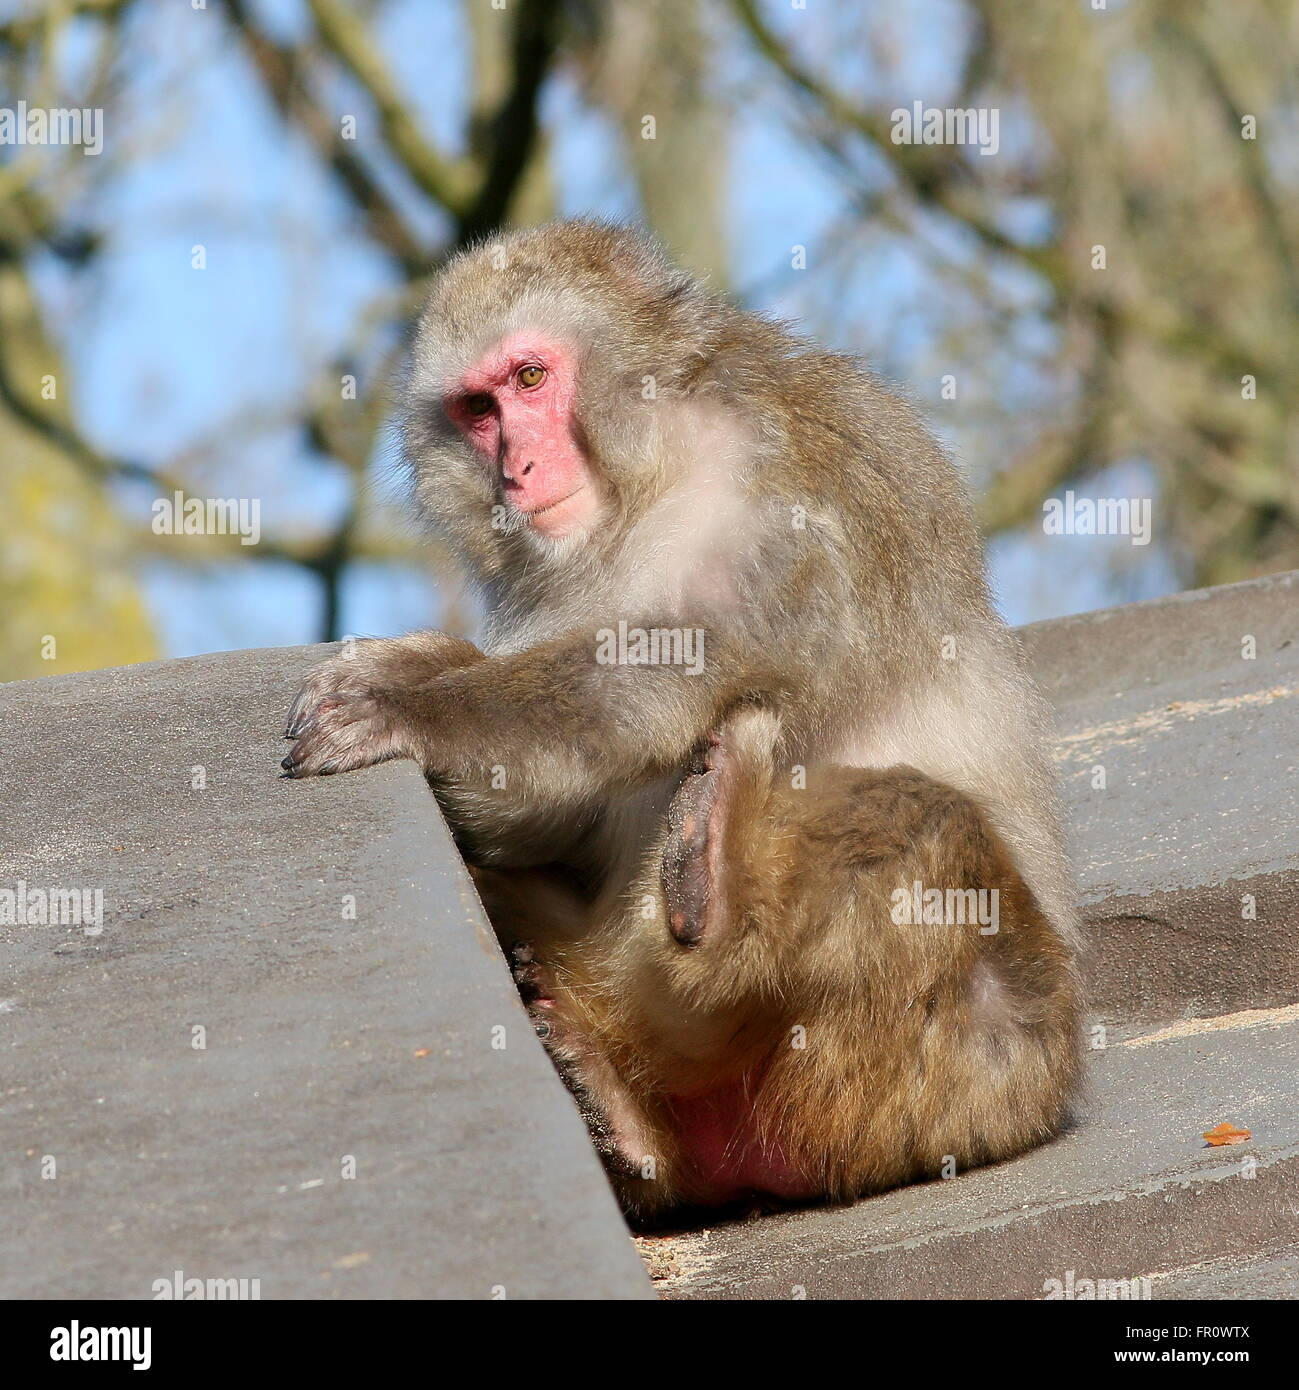 Japanese macaque or Snow monkey (Macaca fuscata) relieving an itch, scratching with his left foot - Stock Image